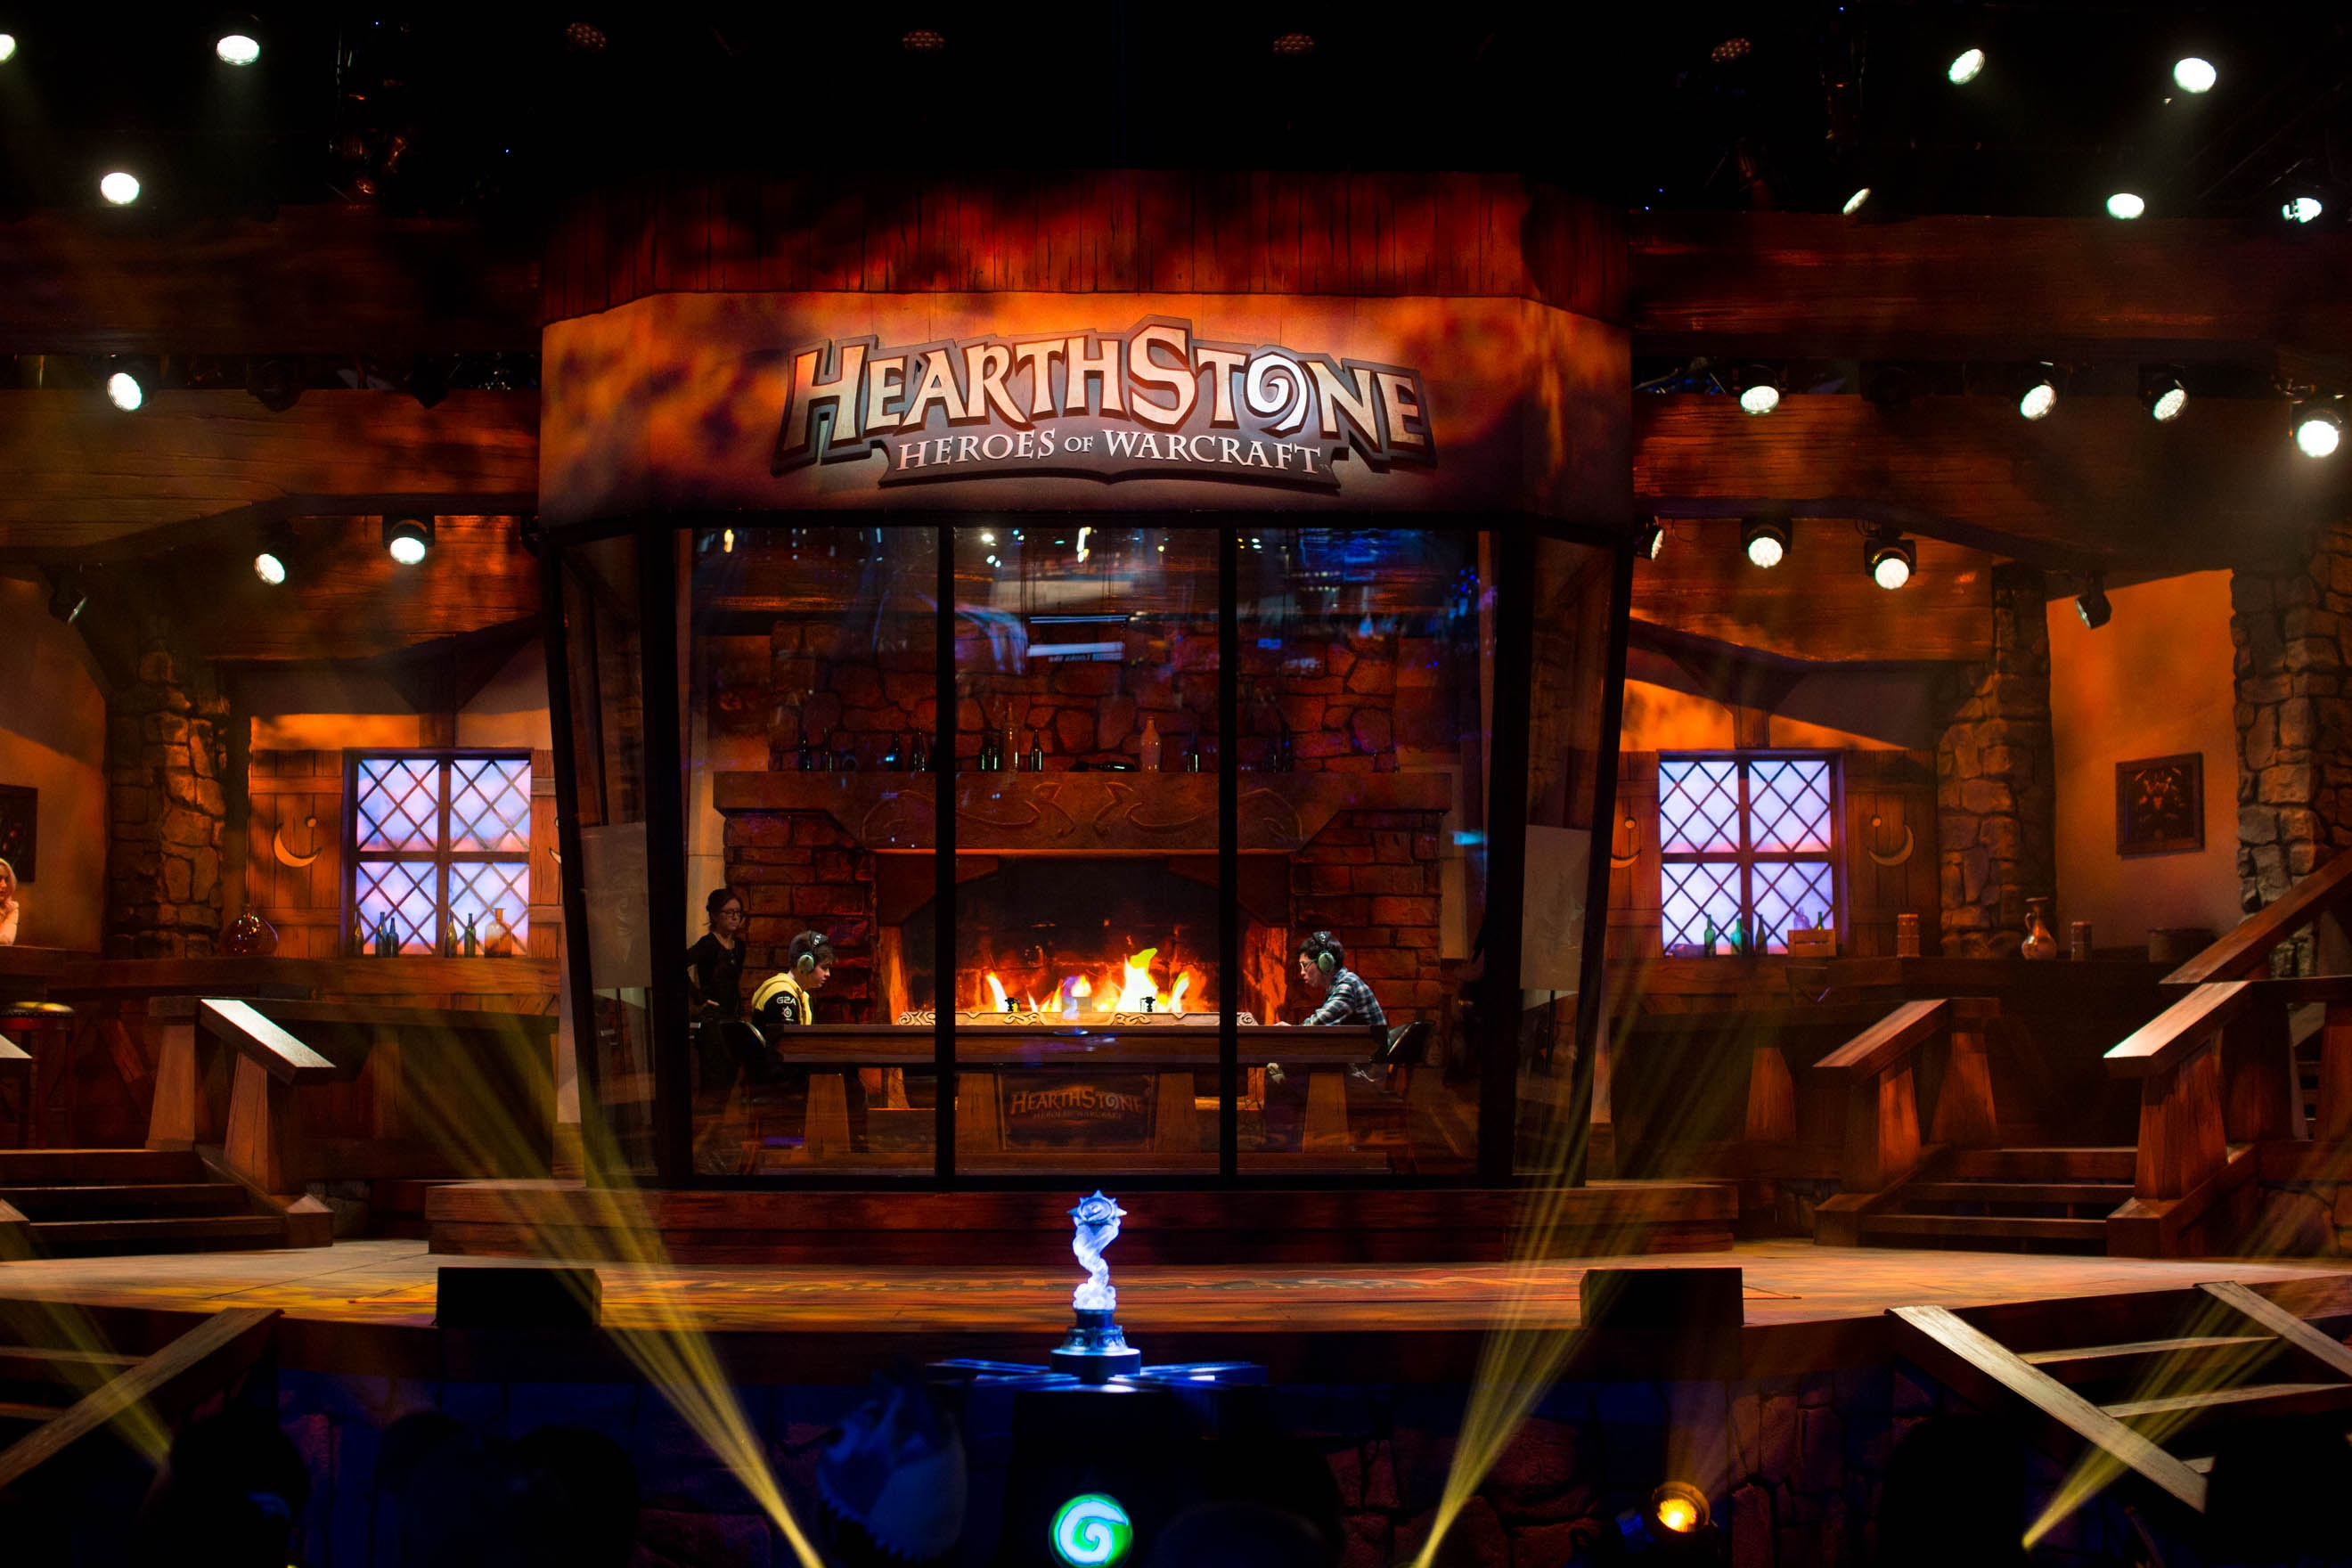 hearthstone_blizzcon_2015_blizzard_entertainment.jpg